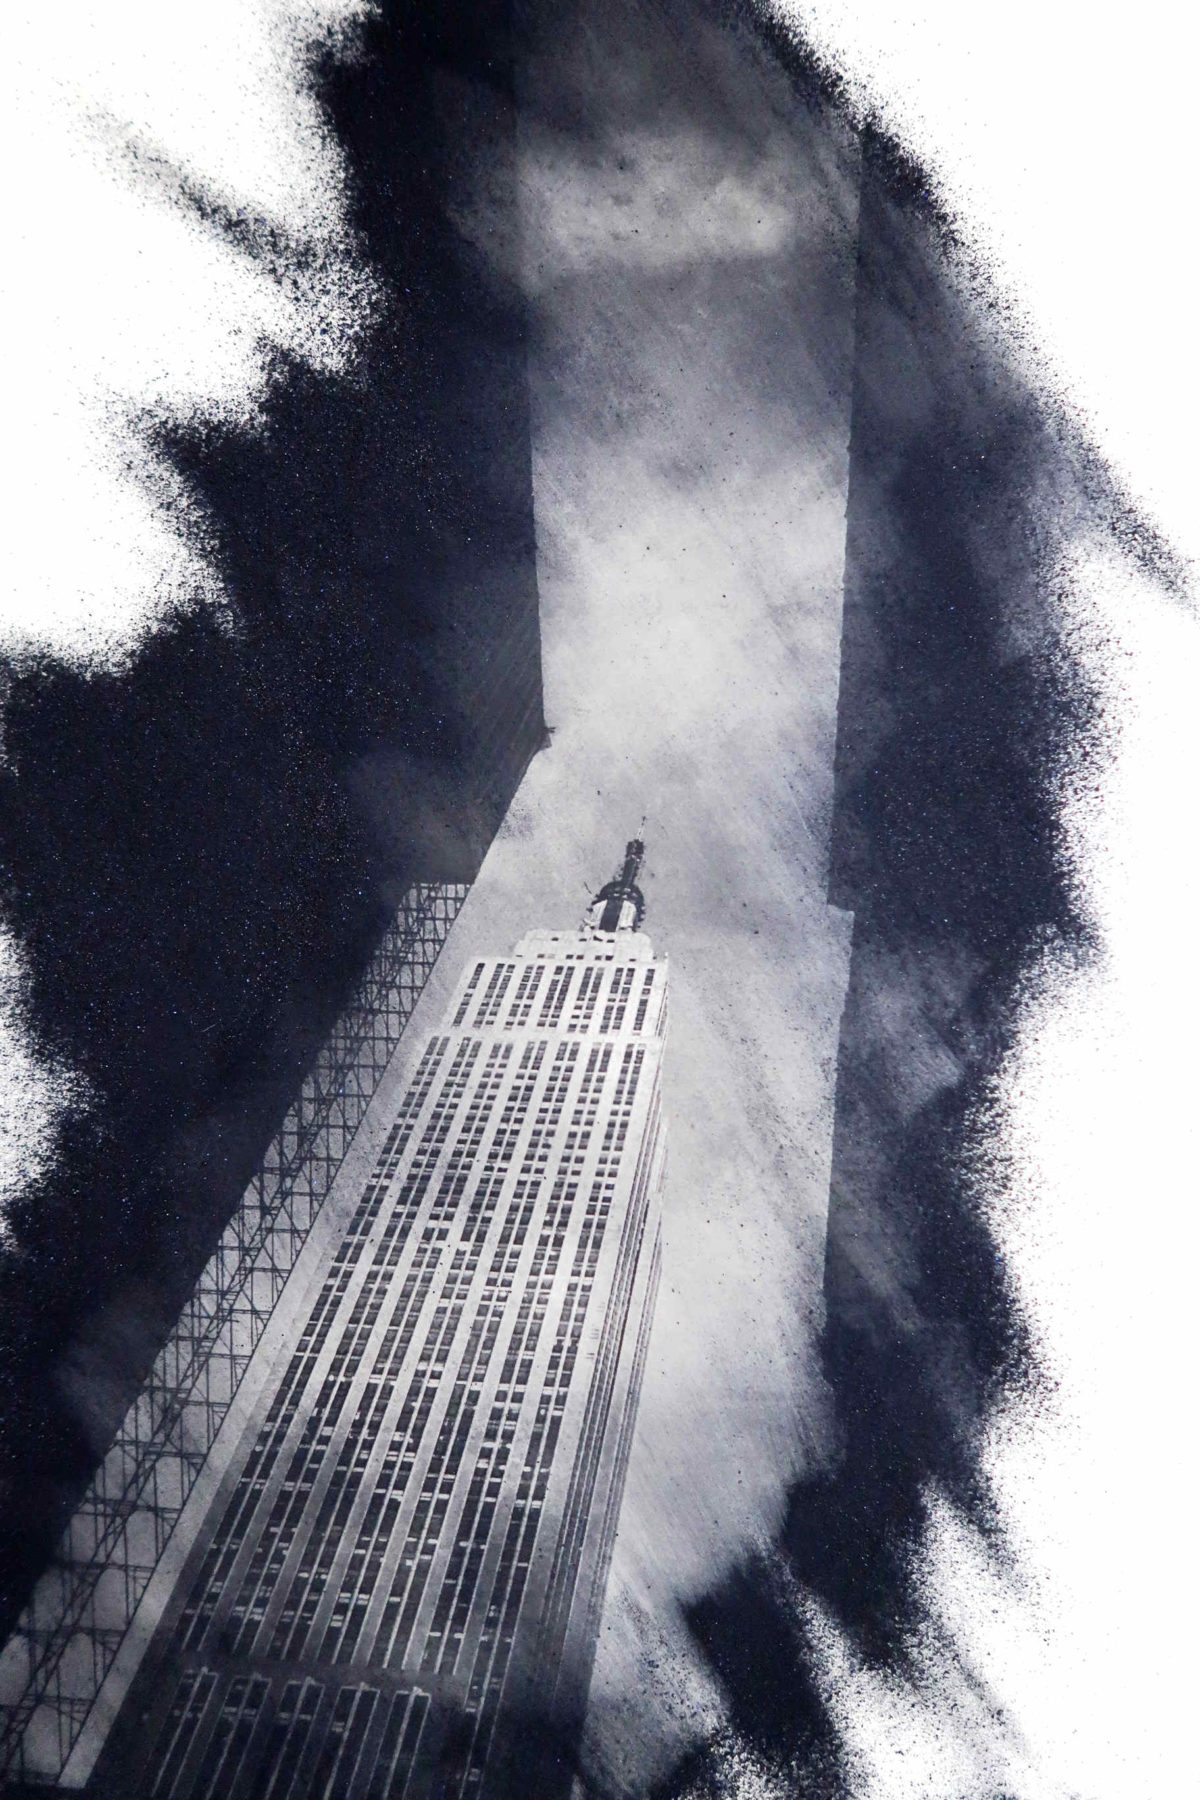 Art photo New York. Empire state building. Performance fotografica di stampa manuale